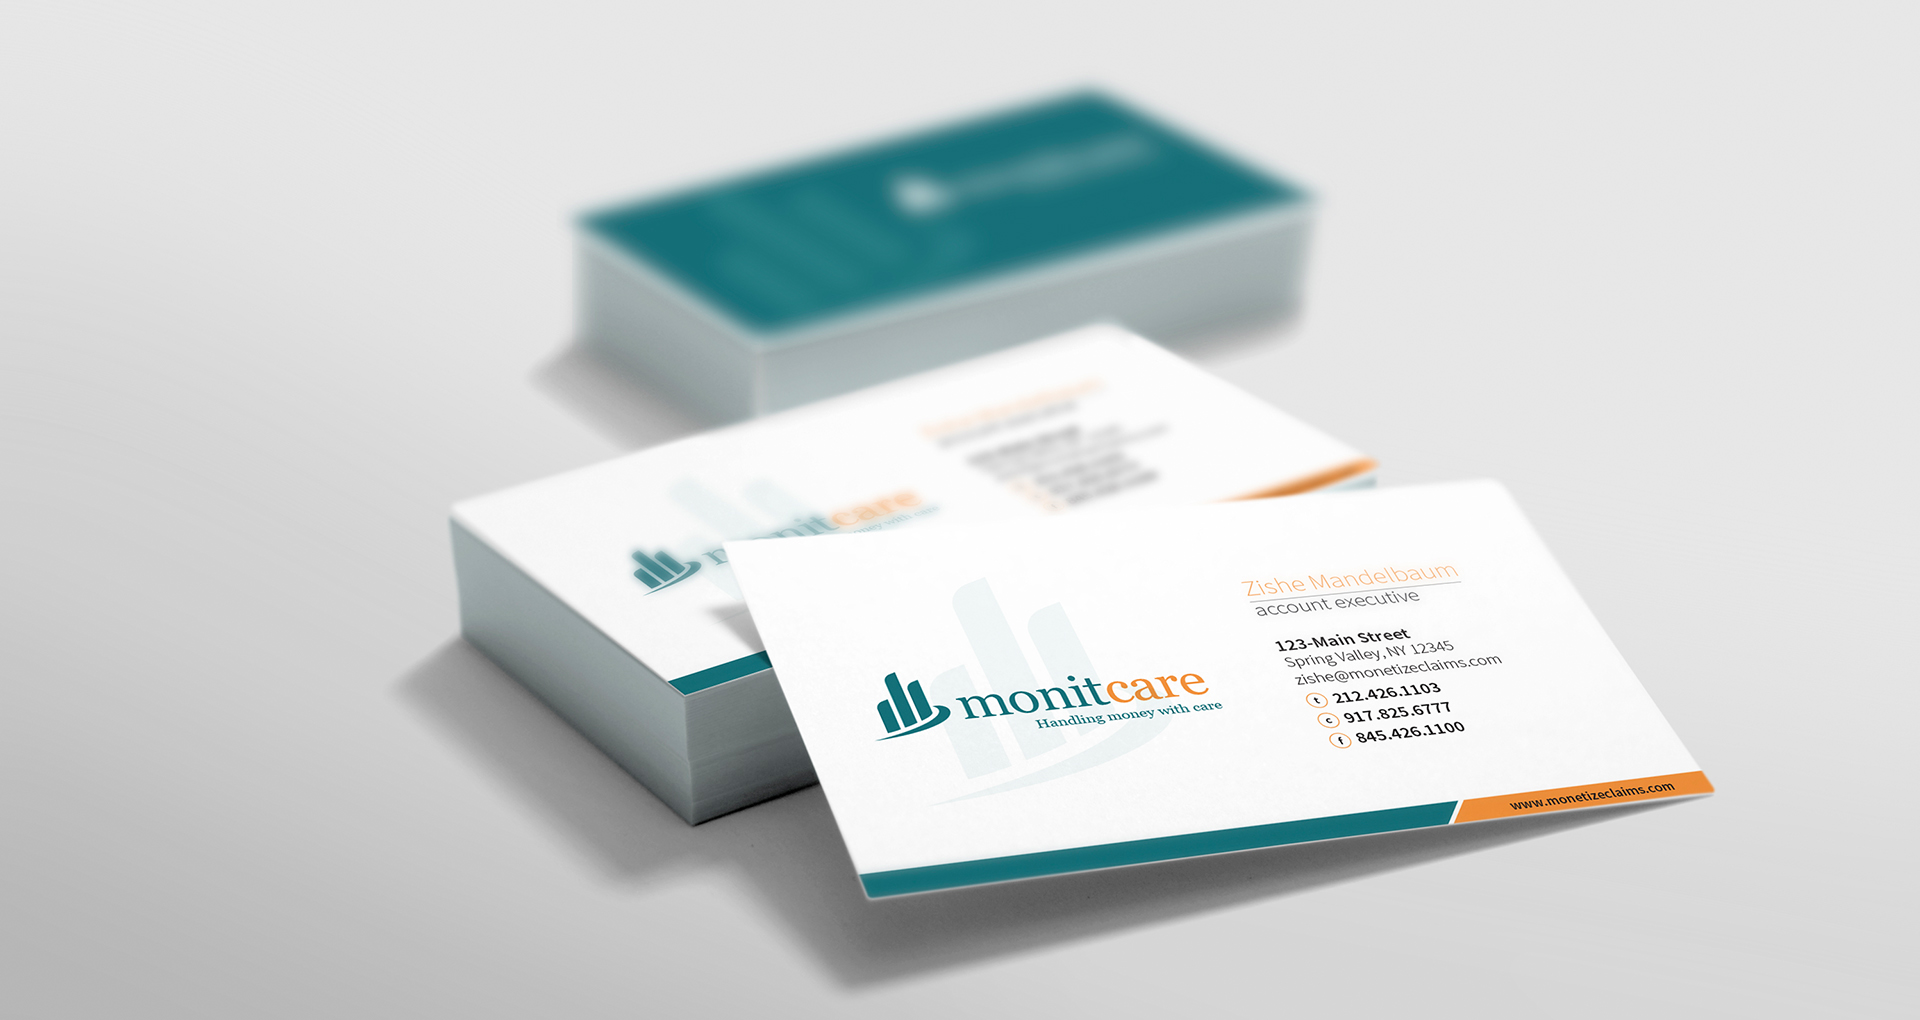 Monitcare Business Card